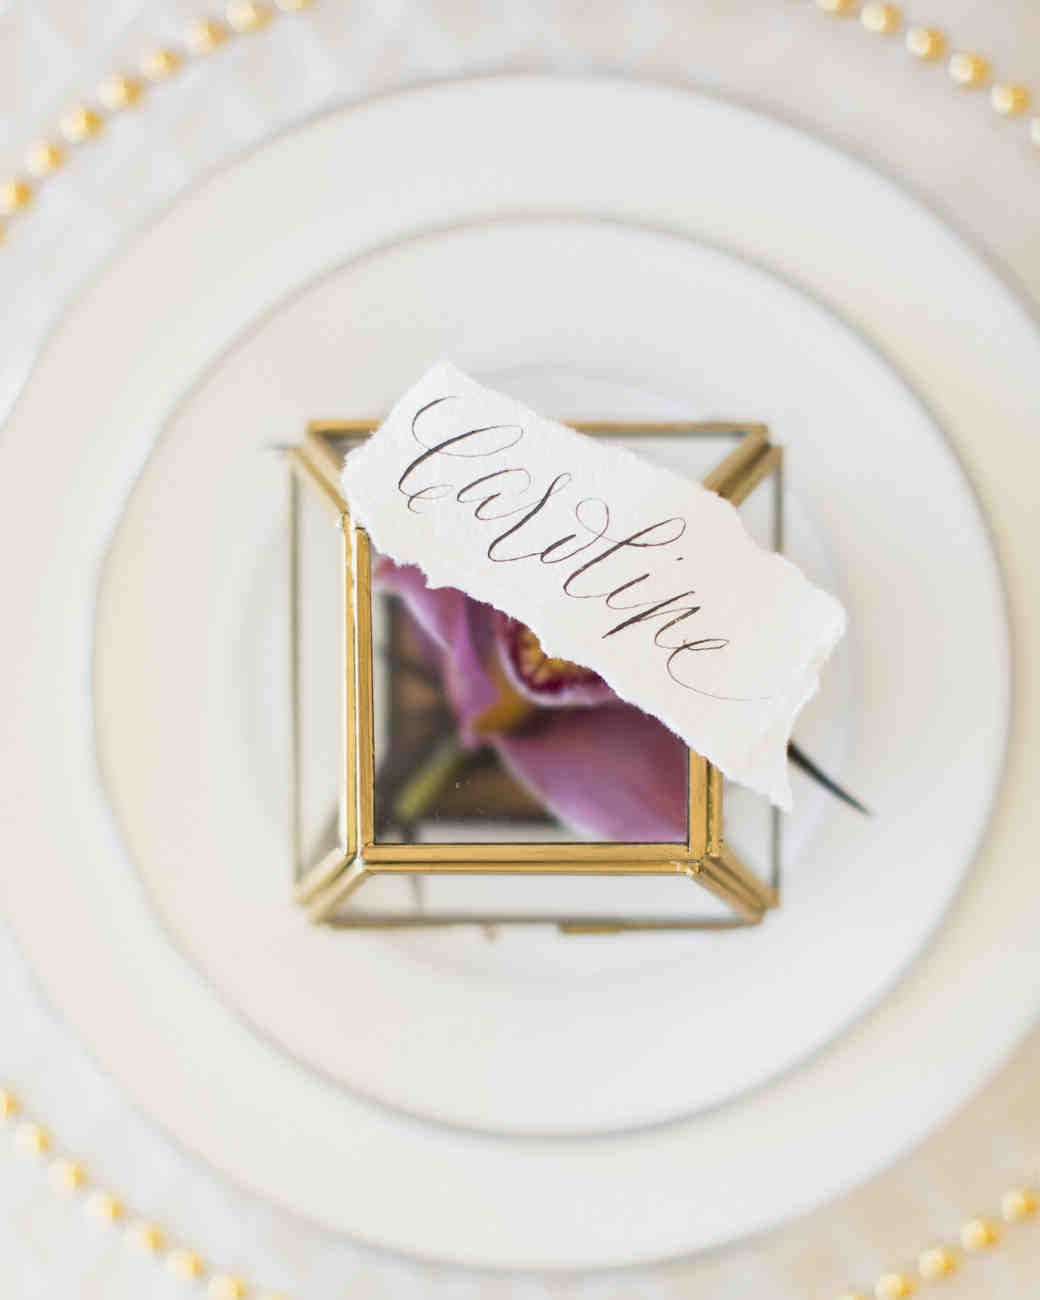 Creative Wedding Place Card Ideas: Wedding Place Cards That Are Truly Unique